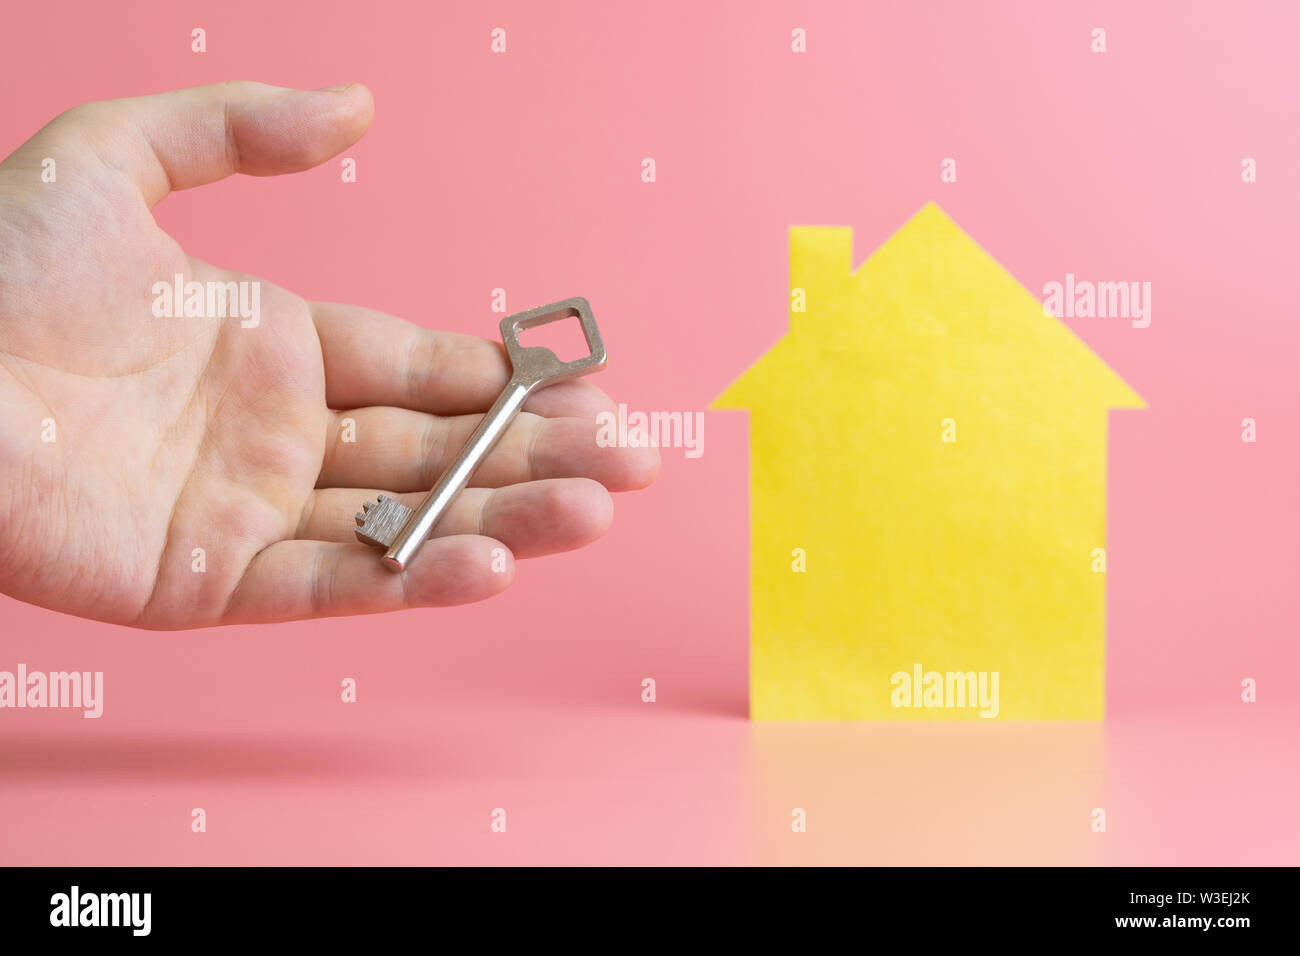 Rental housing concept. Hand with key - symbol of buying or selling real estate in mortgage loan. Stock Photo